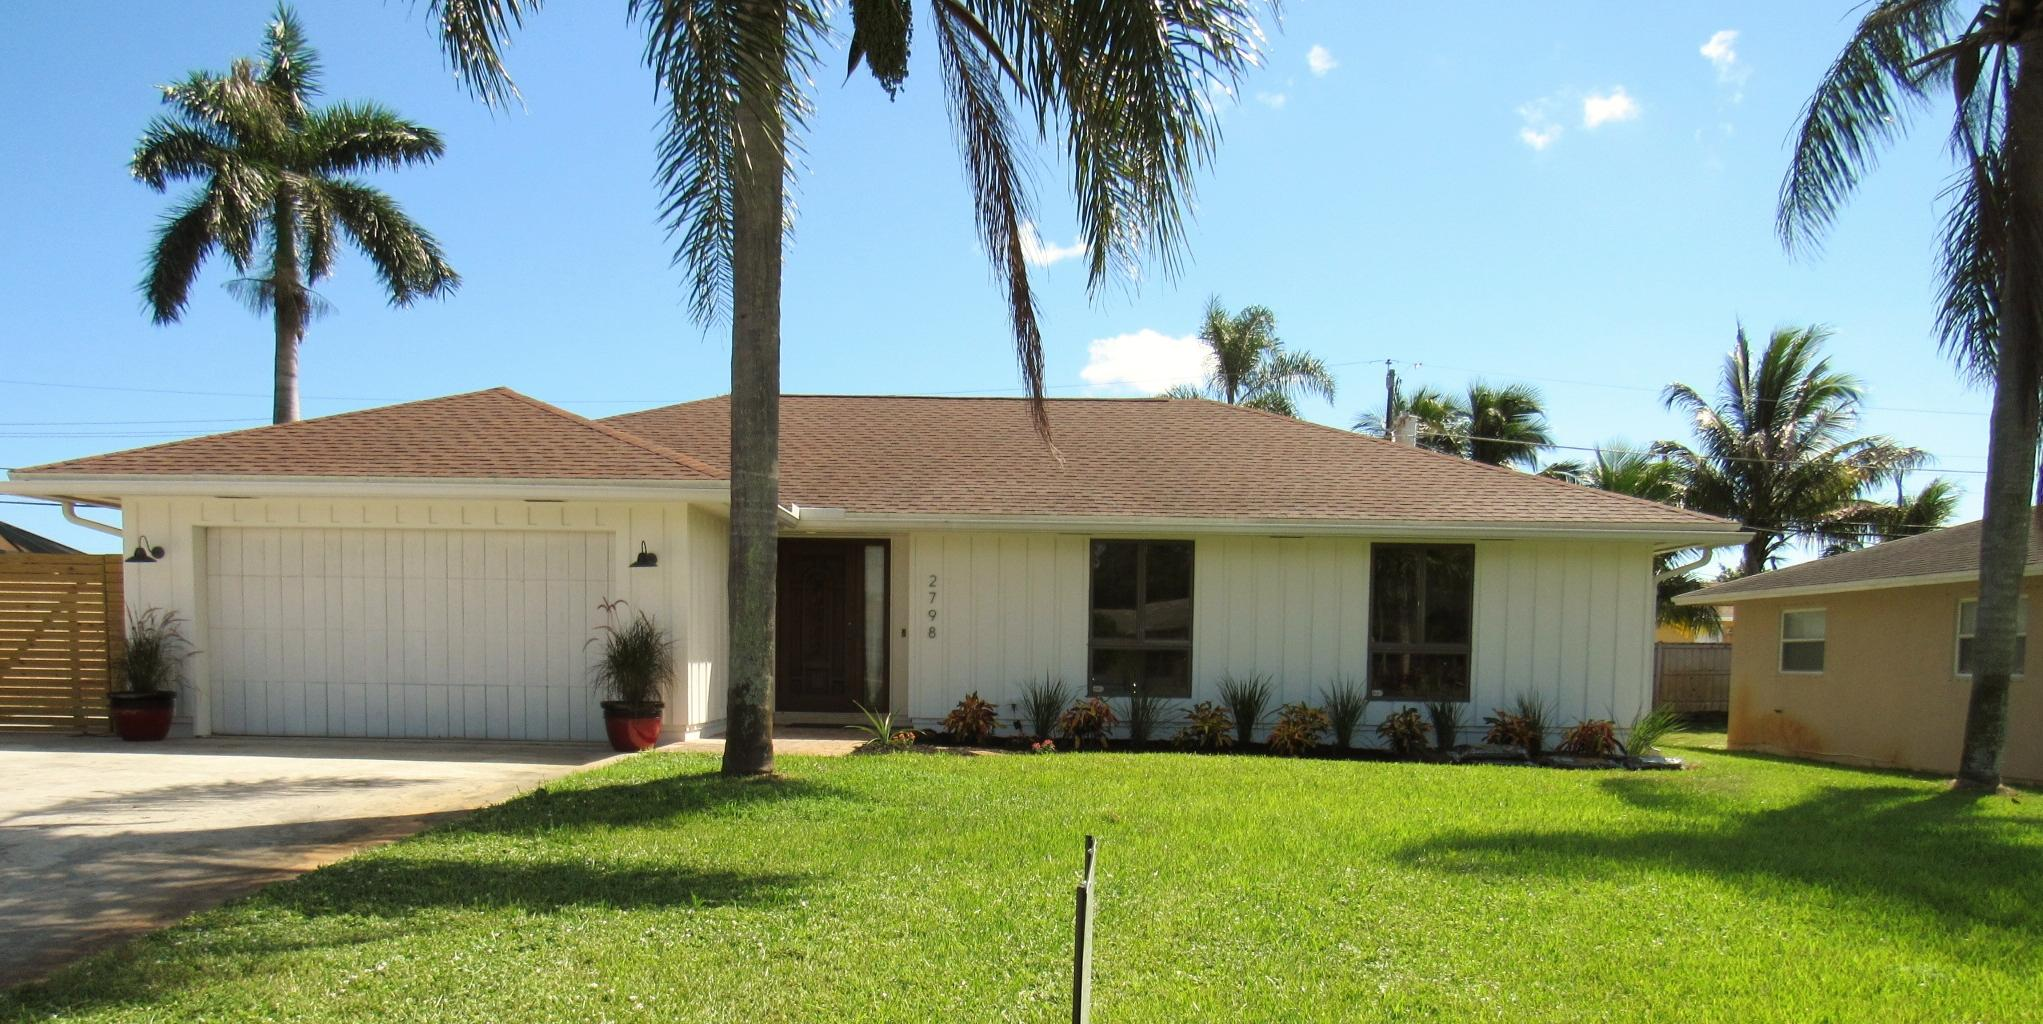 Home for sale in Floral Park Lantana Florida